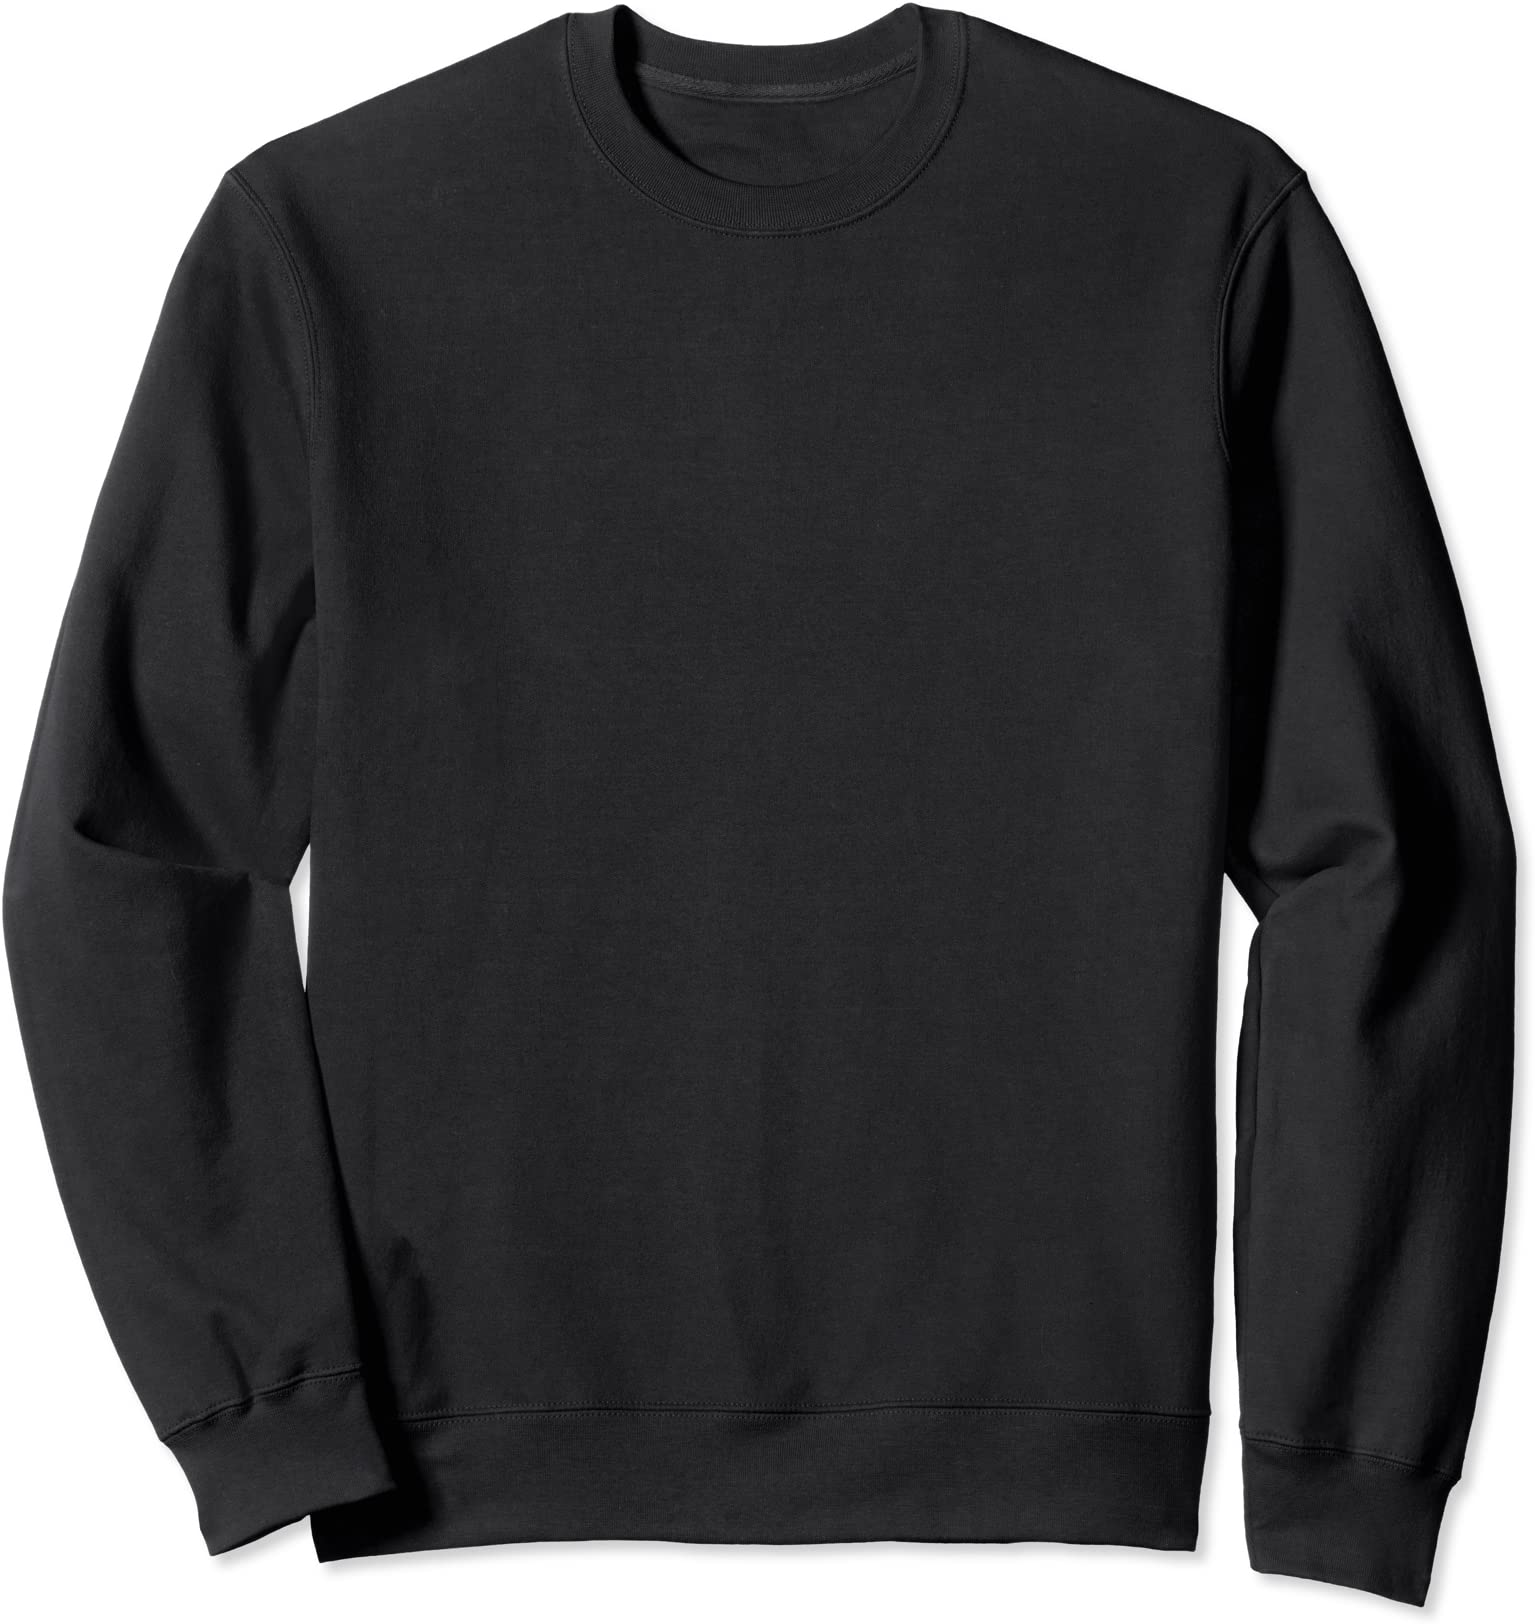 graphke Rowing Though The River Unisex Crew Neck Sweatshirt